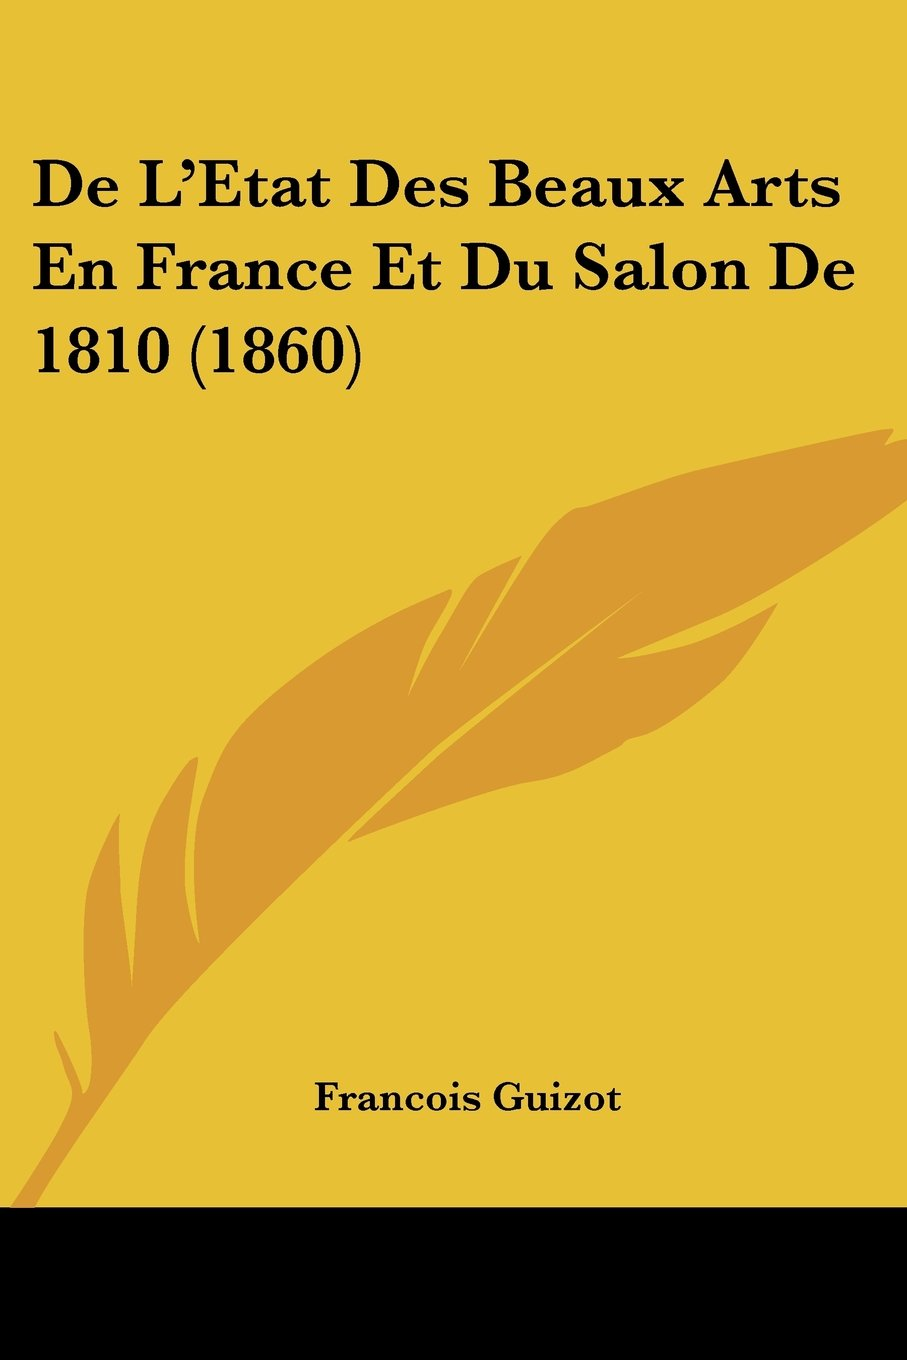 De L'Etat Des Beaux Arts En France Et Du Salon De 1810 (1860) (French Edition) pdf epub